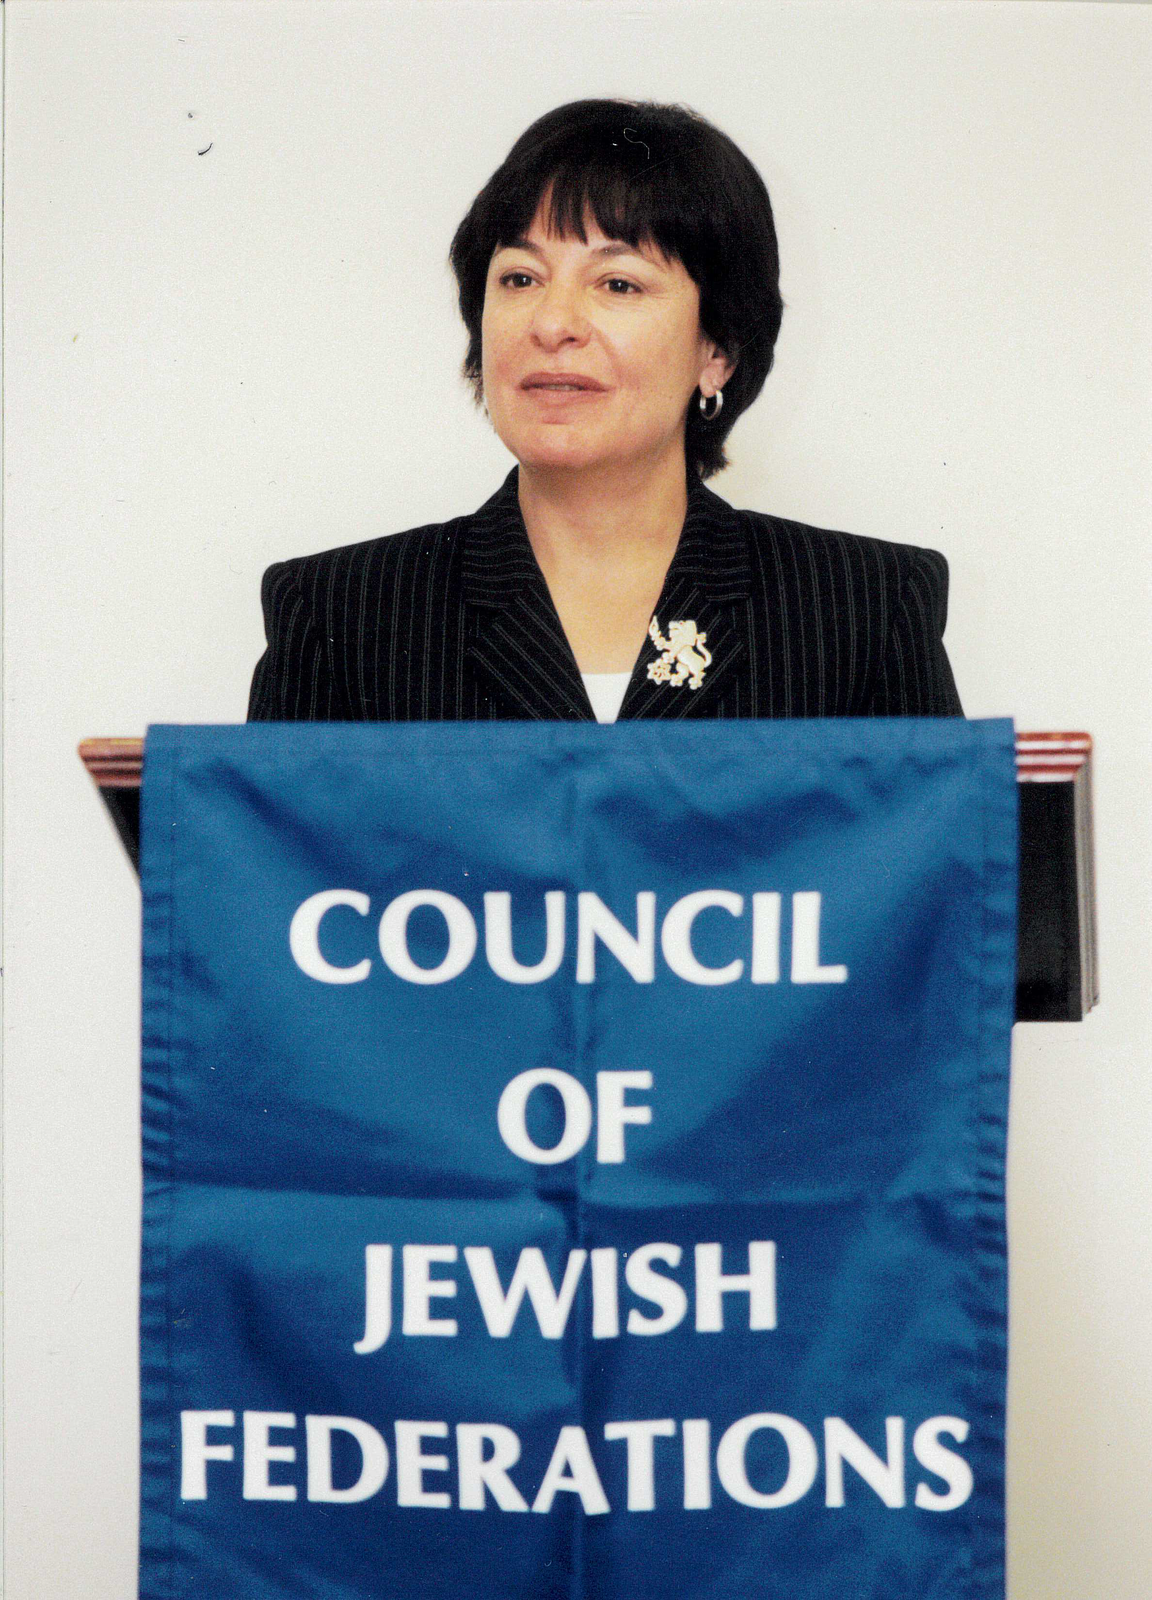 Michele representing the Council of Jewish Federations.